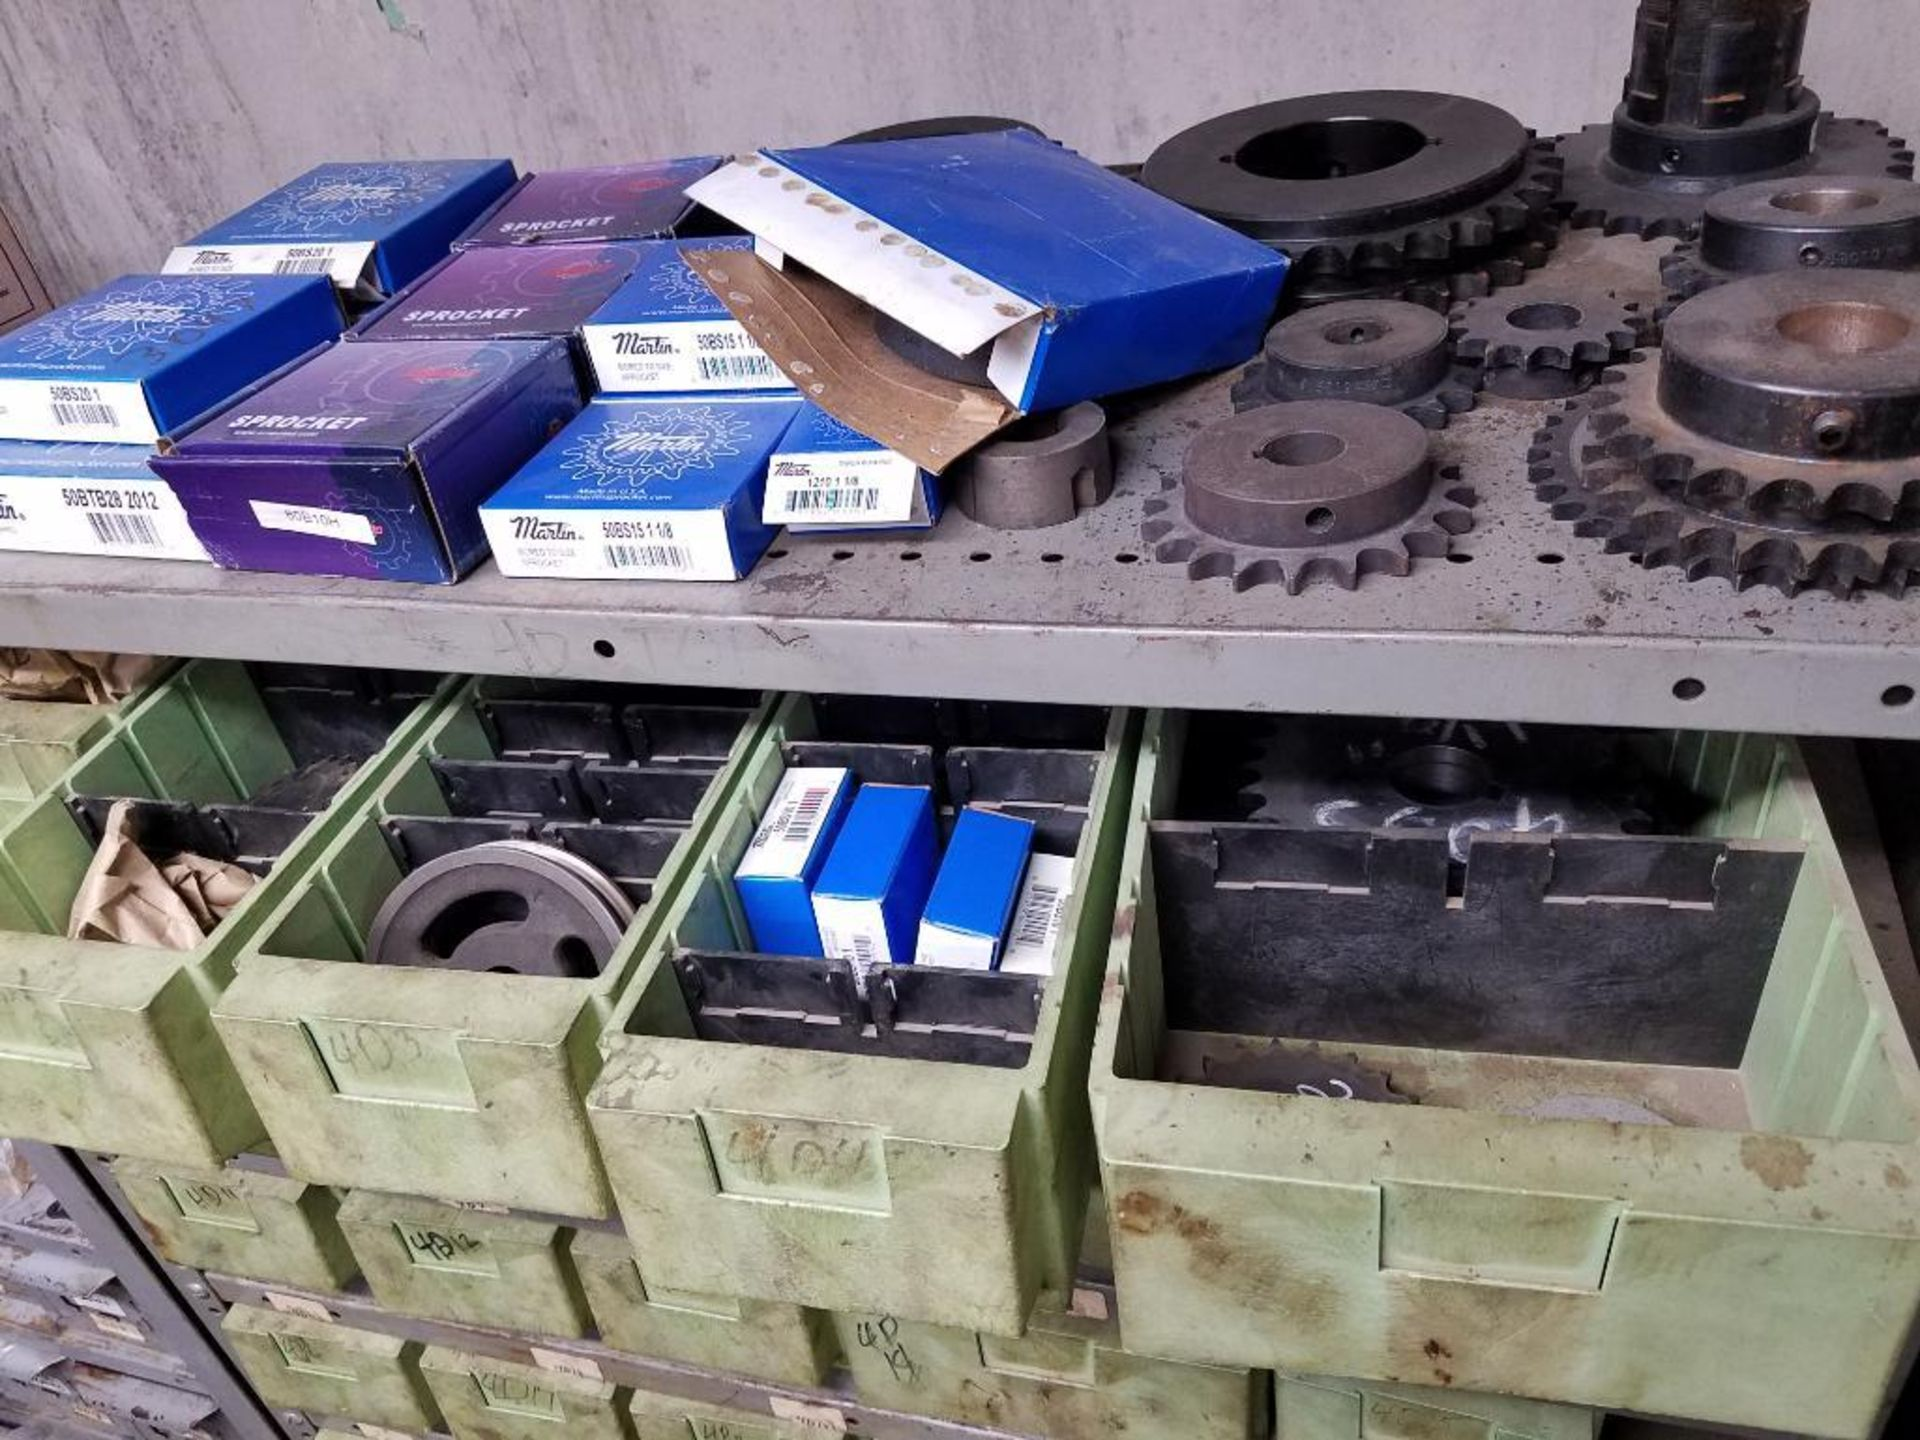 bushings, sheaves, links, chain, couplers, sprockets, and pulleys - Image 15 of 24